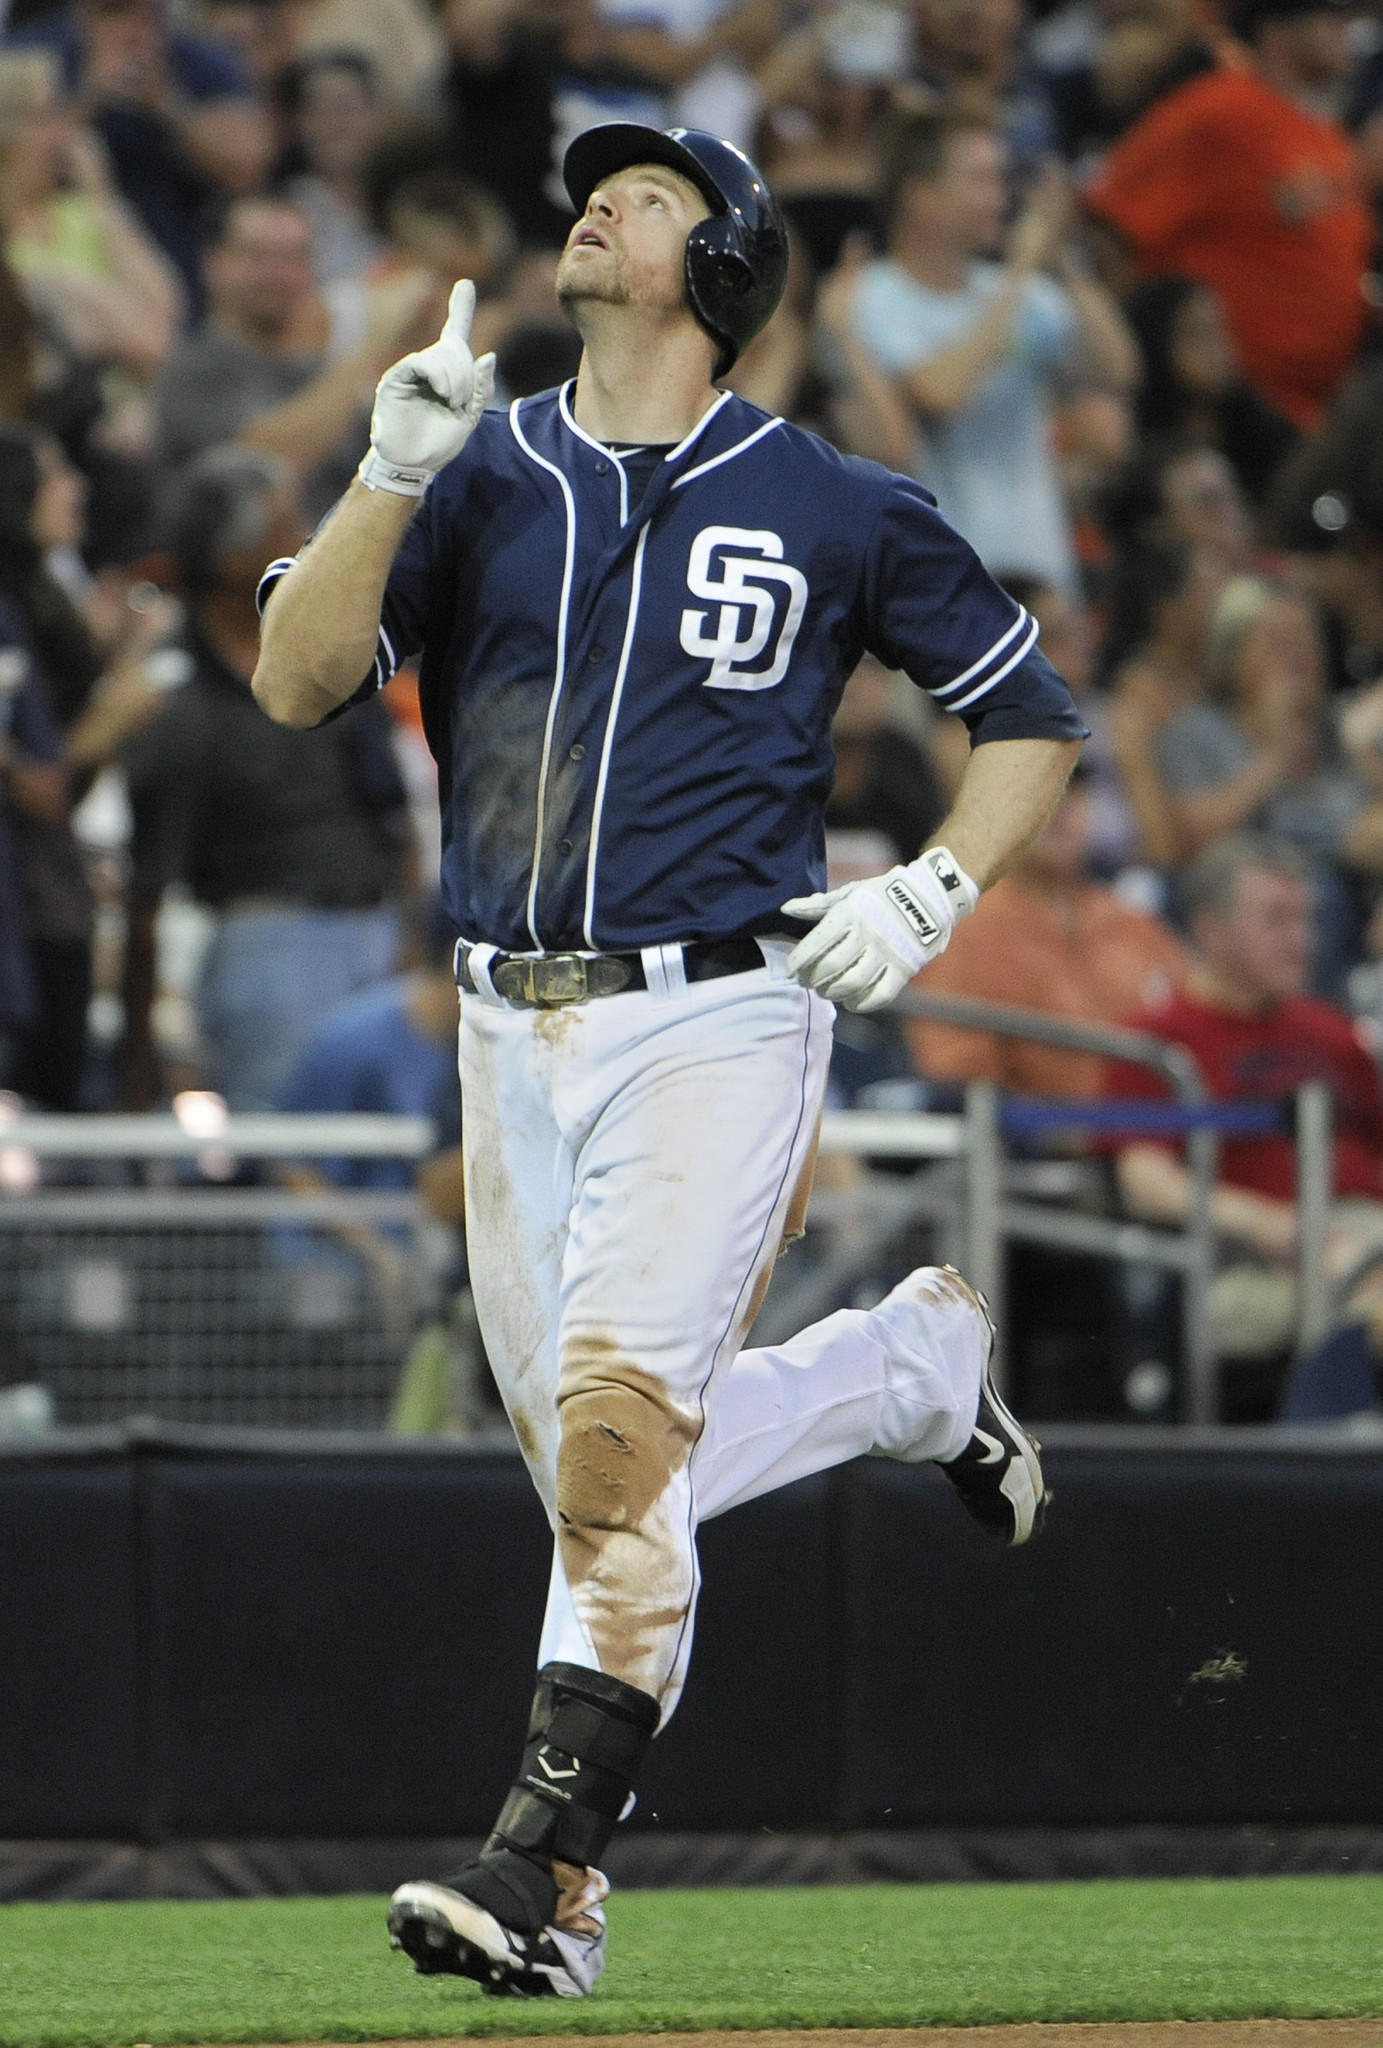 Padres slugger Chase Headley points skyward after hitting a two-run homer in a game against the Giants.